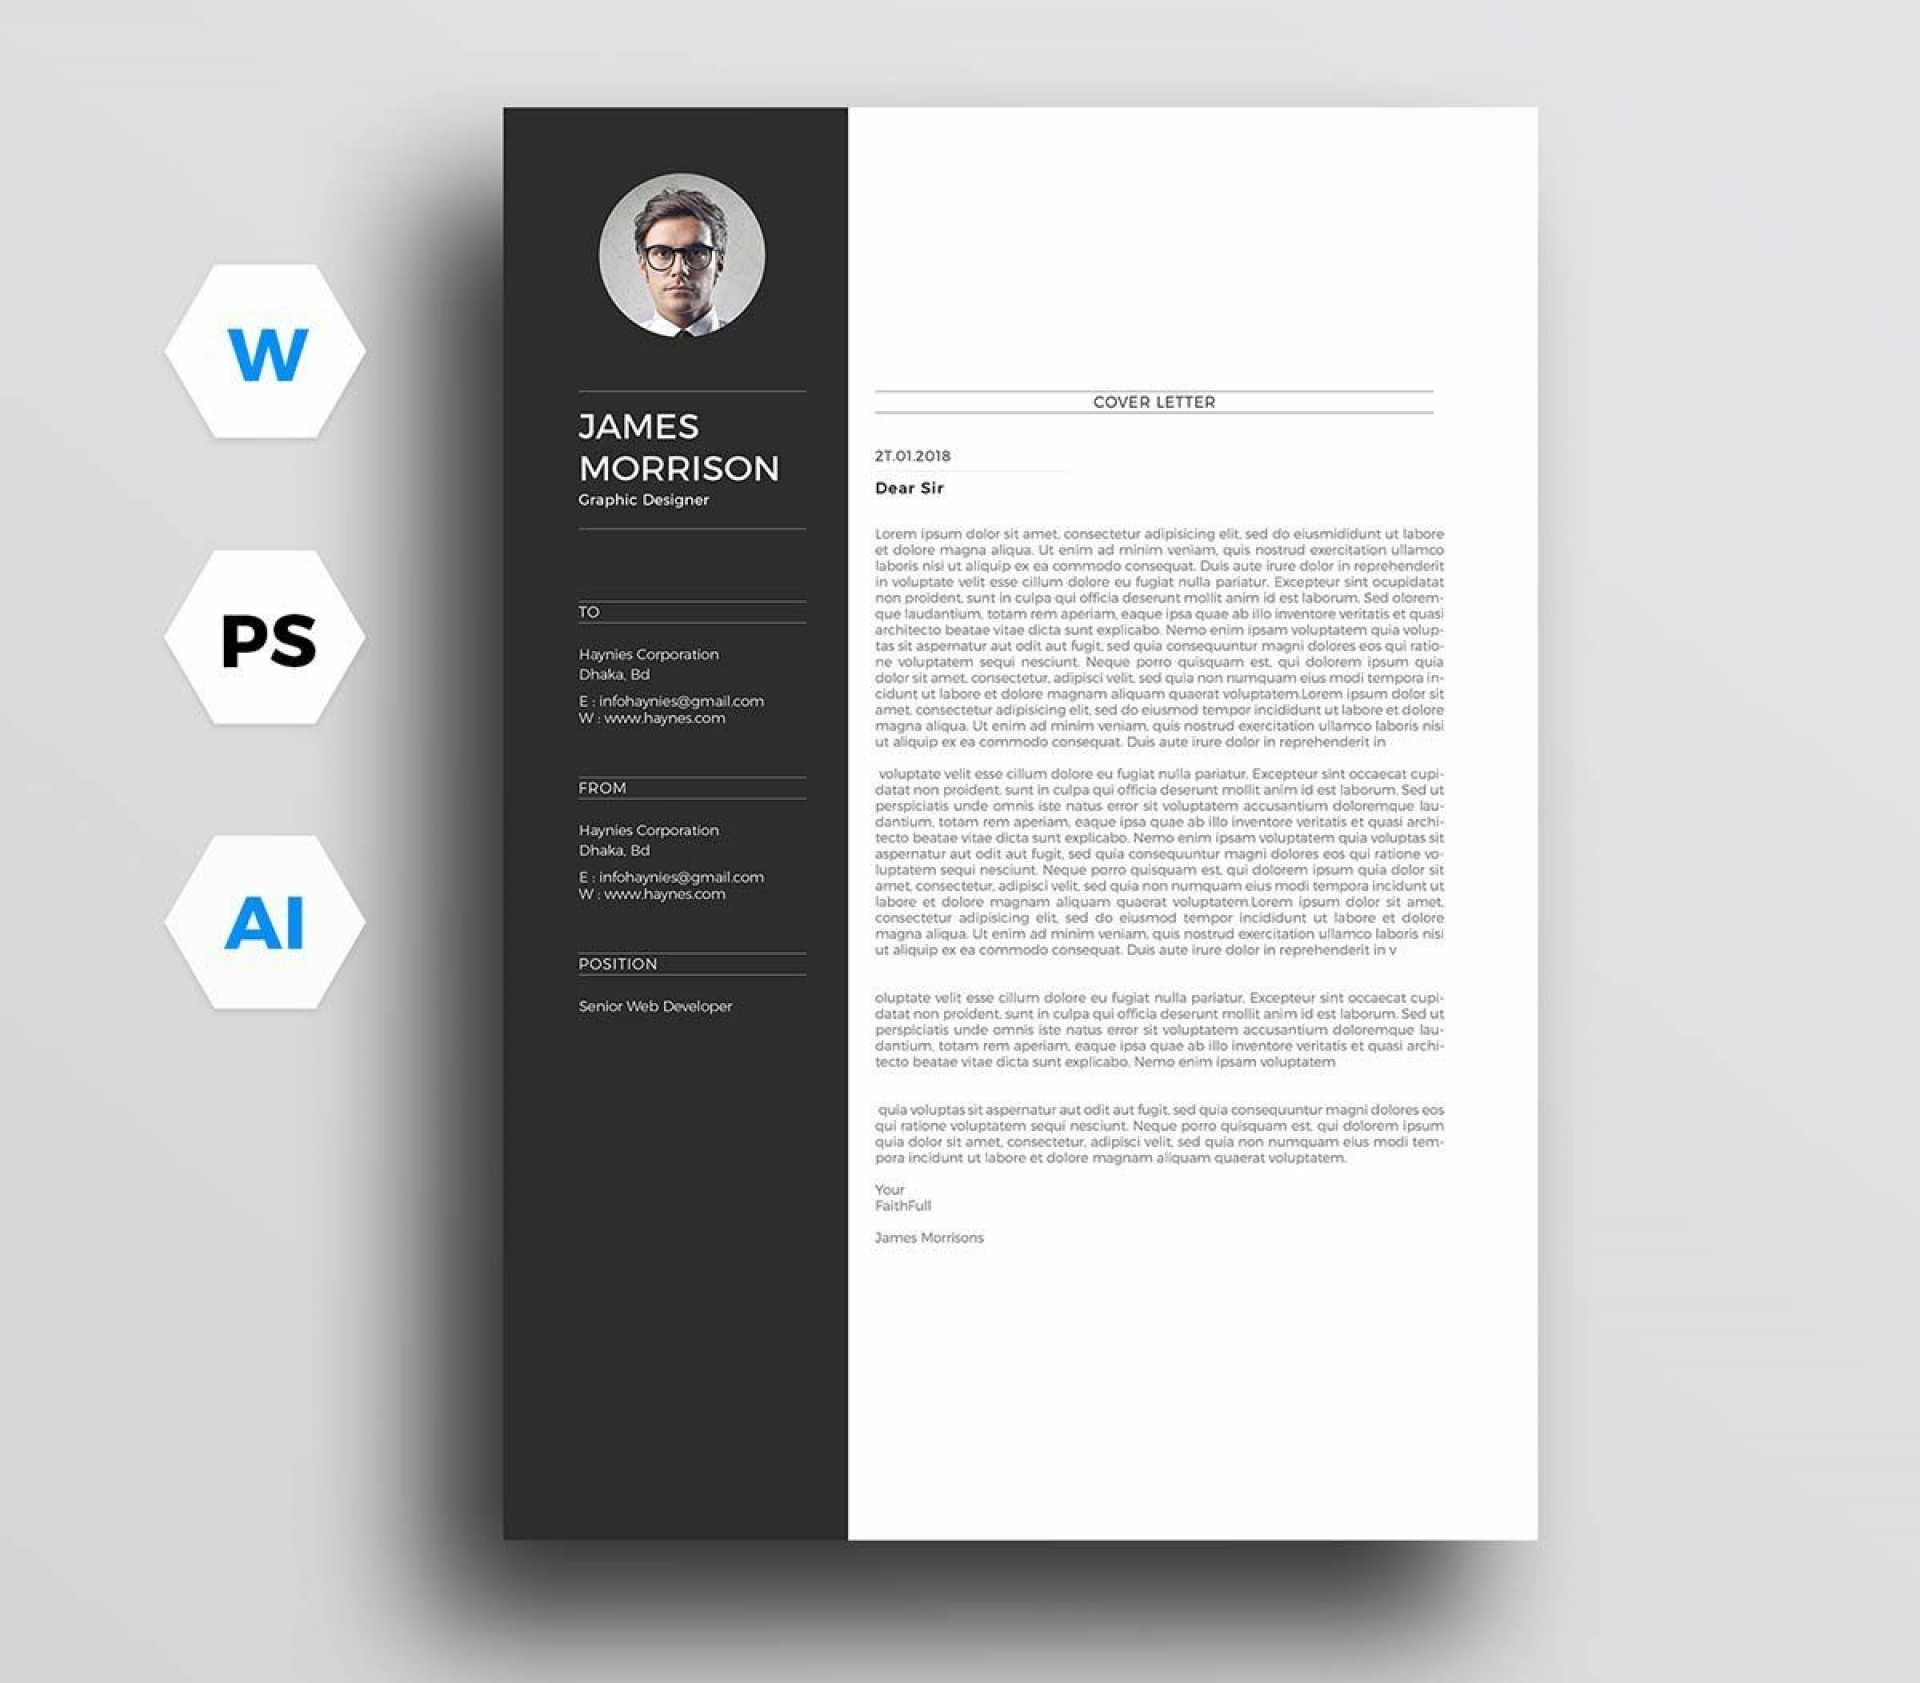 004 Surprising Download Cv And Cover Letter Template Image  Templates1920